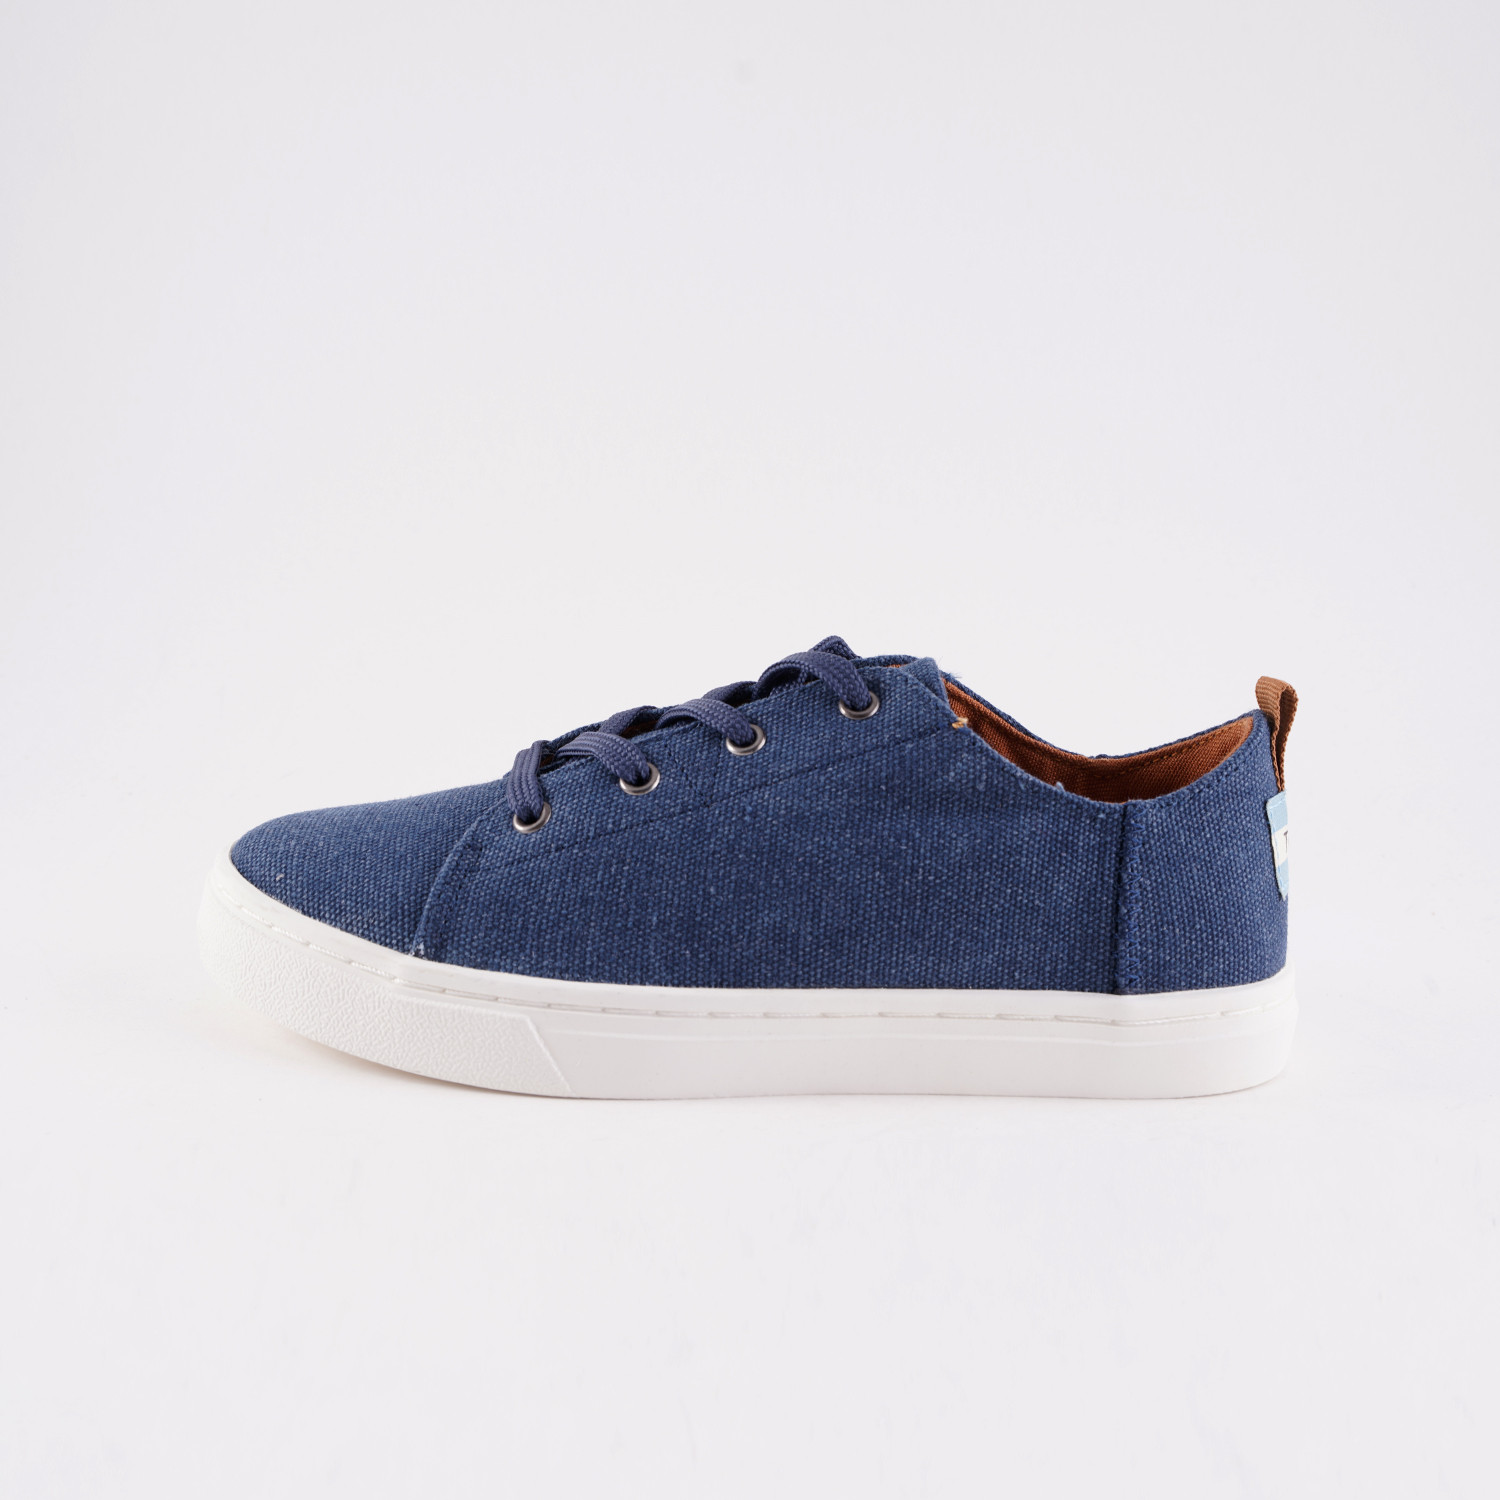 TOMS Navy Washed Canvas Lenny Sneak Kid' Shoes (9000051908_6707)